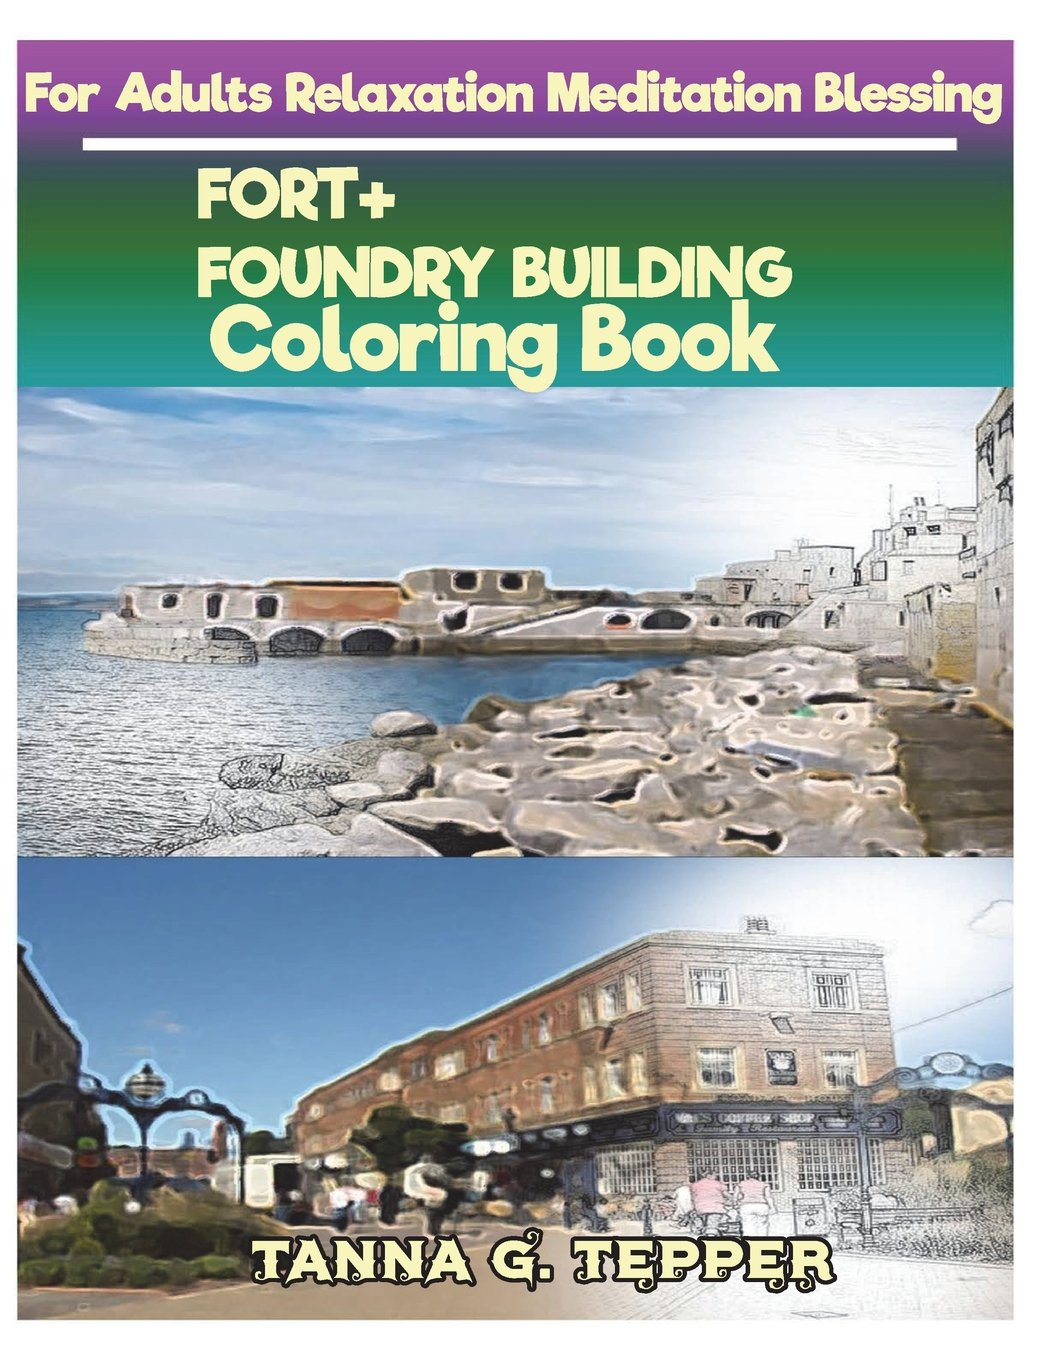 FORT+FOUNDRY BUILDING Coloring book for Adults Relaxation Meditation Blessing: Sketch coloring book Grayscale Pictures pdf